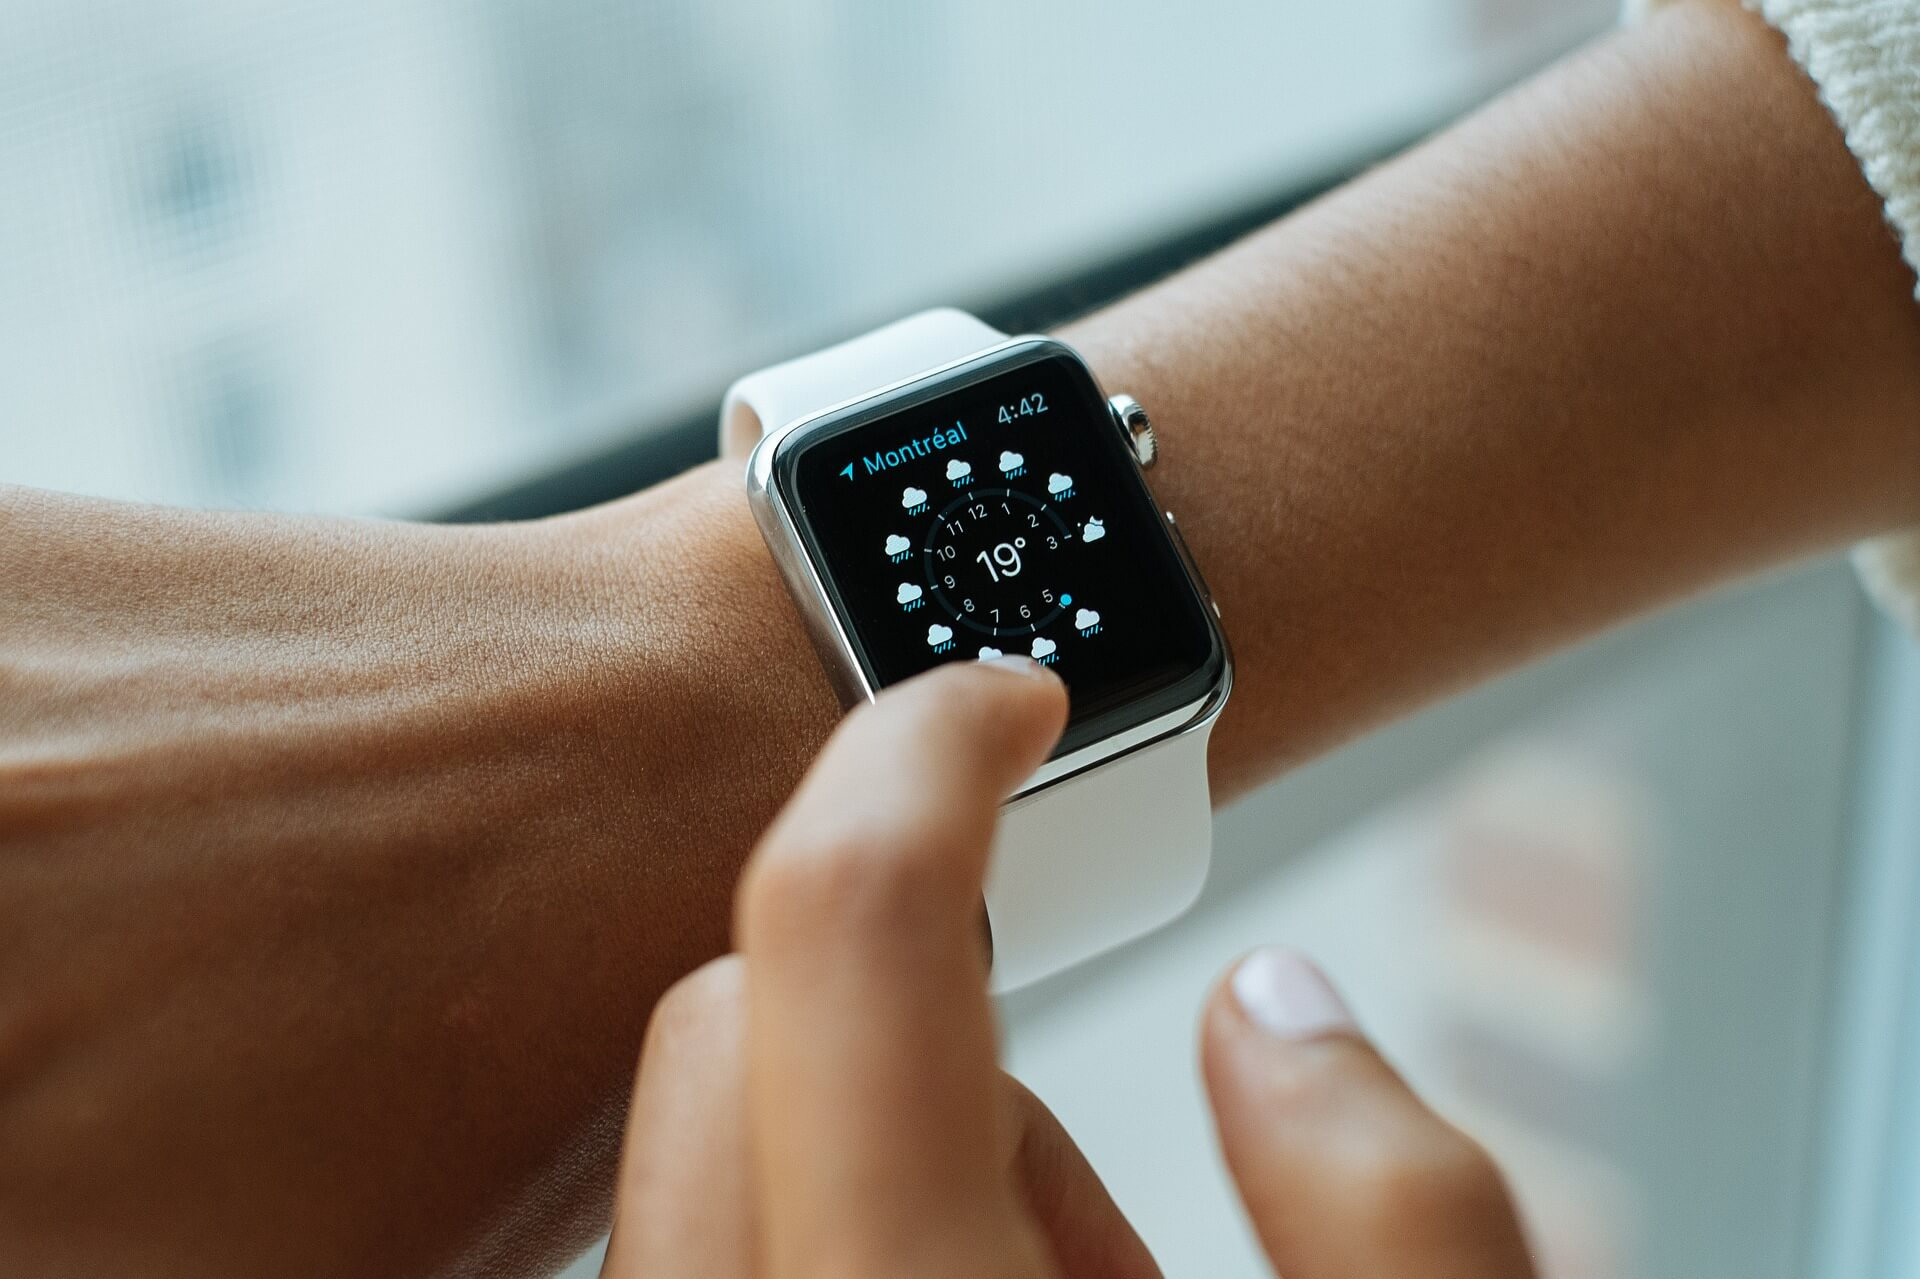 OneNote-for-Android-Wear-1410890744-0-11